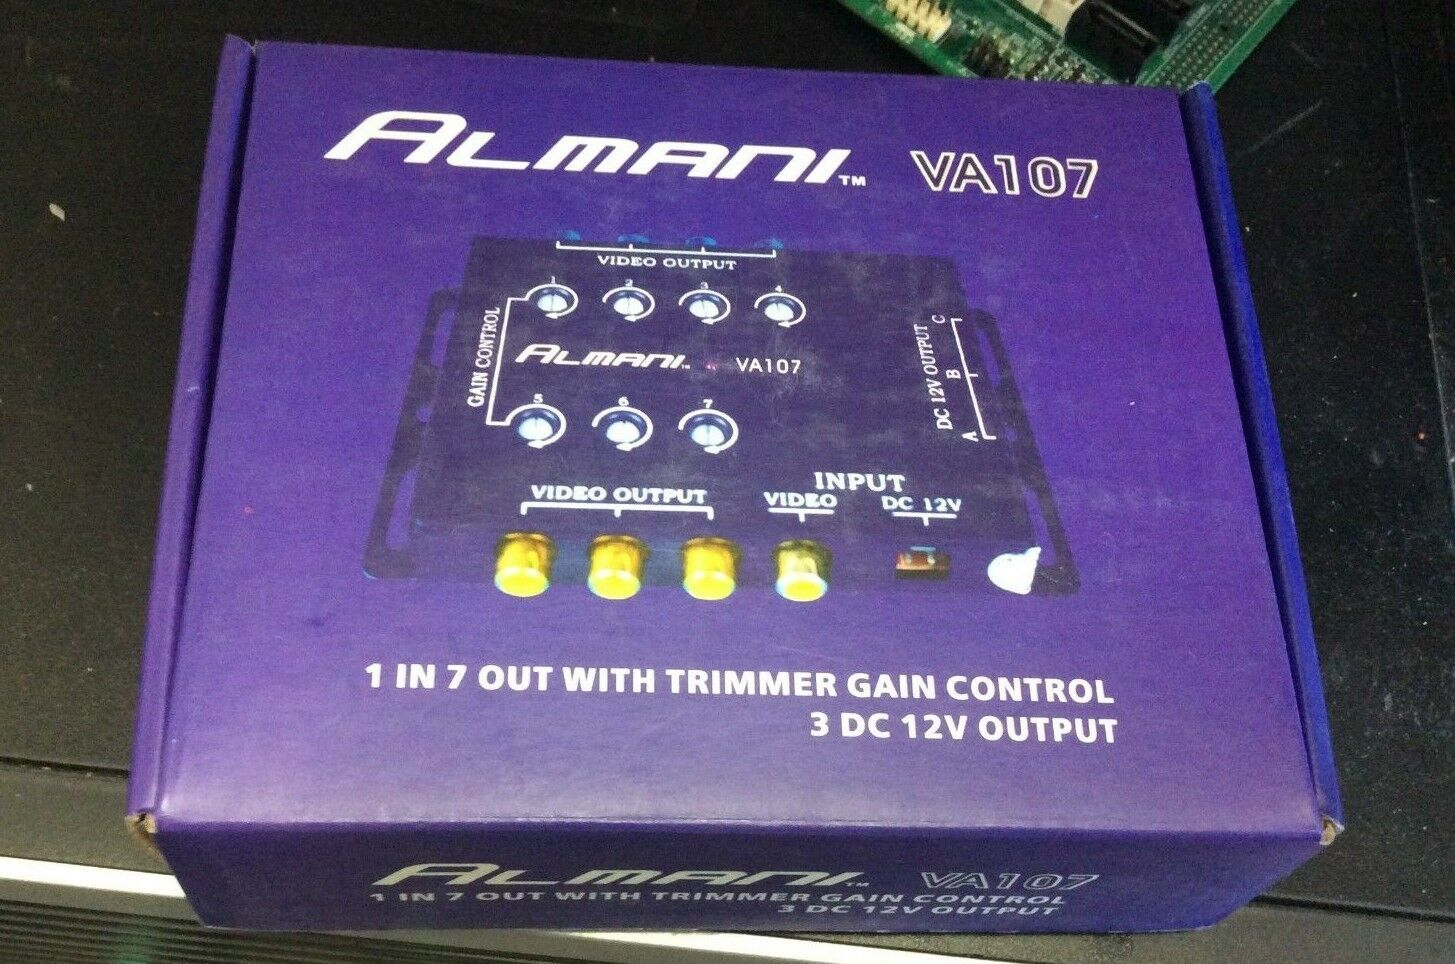 7 way video spliter with Trimmer Gain Control 3DC 12V Output ALMANI VA107